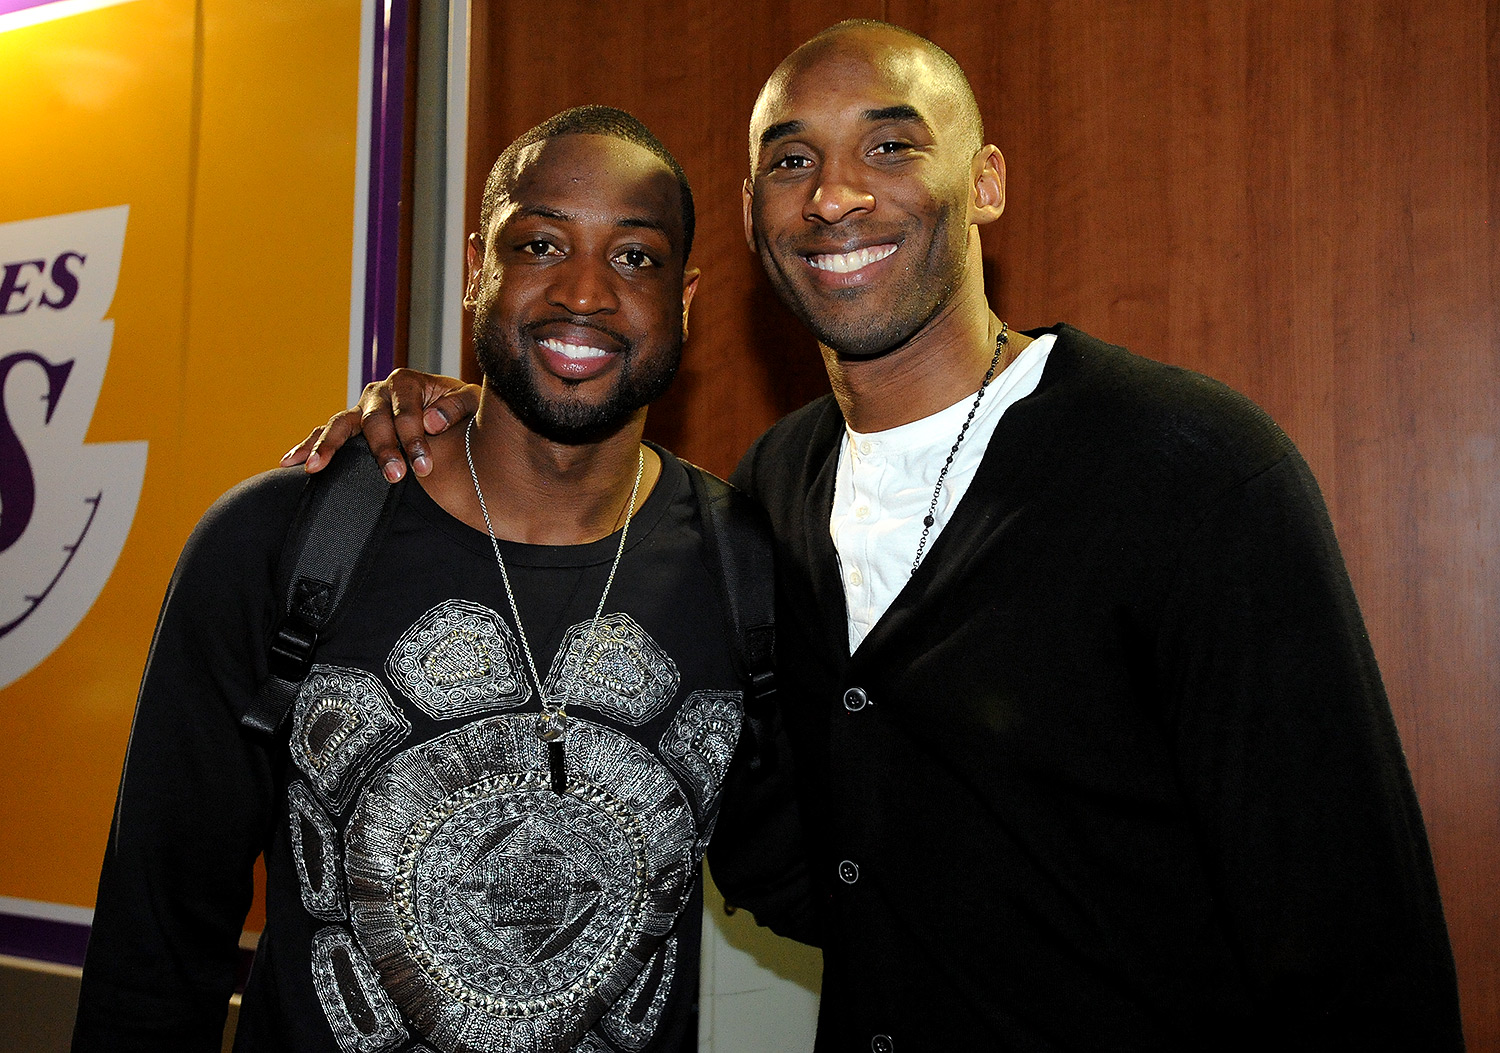 Dwyane Wade #3 of the Miami Heat and Kobe Bryant #24 of the Los Angeles Lakers